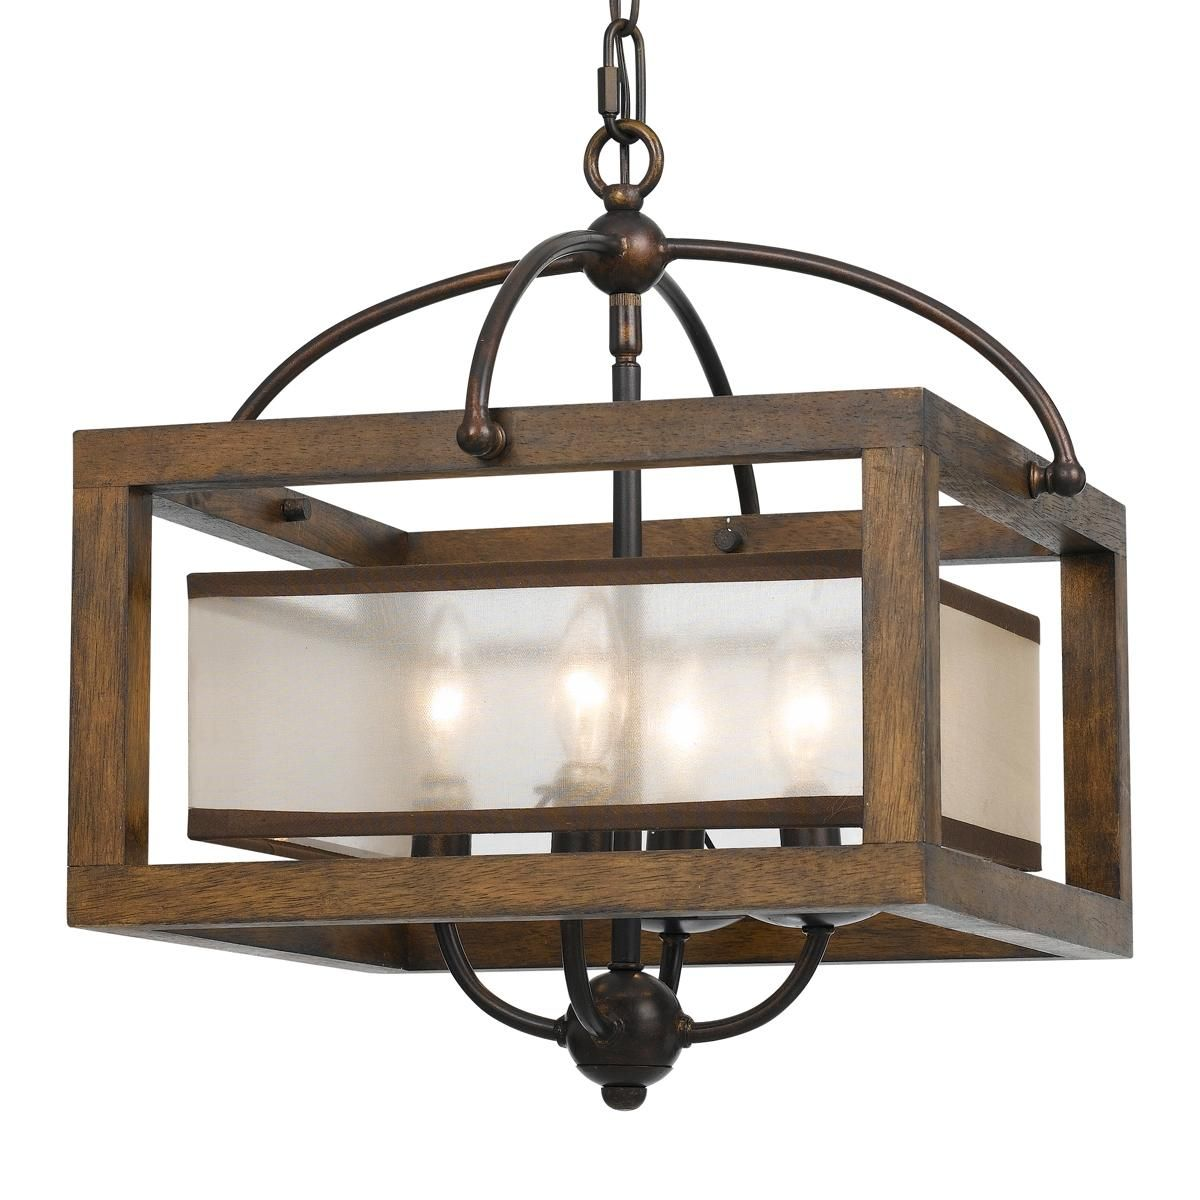 Square Wood Frame and Sheer Ceiling Light | Modern Rustic ...